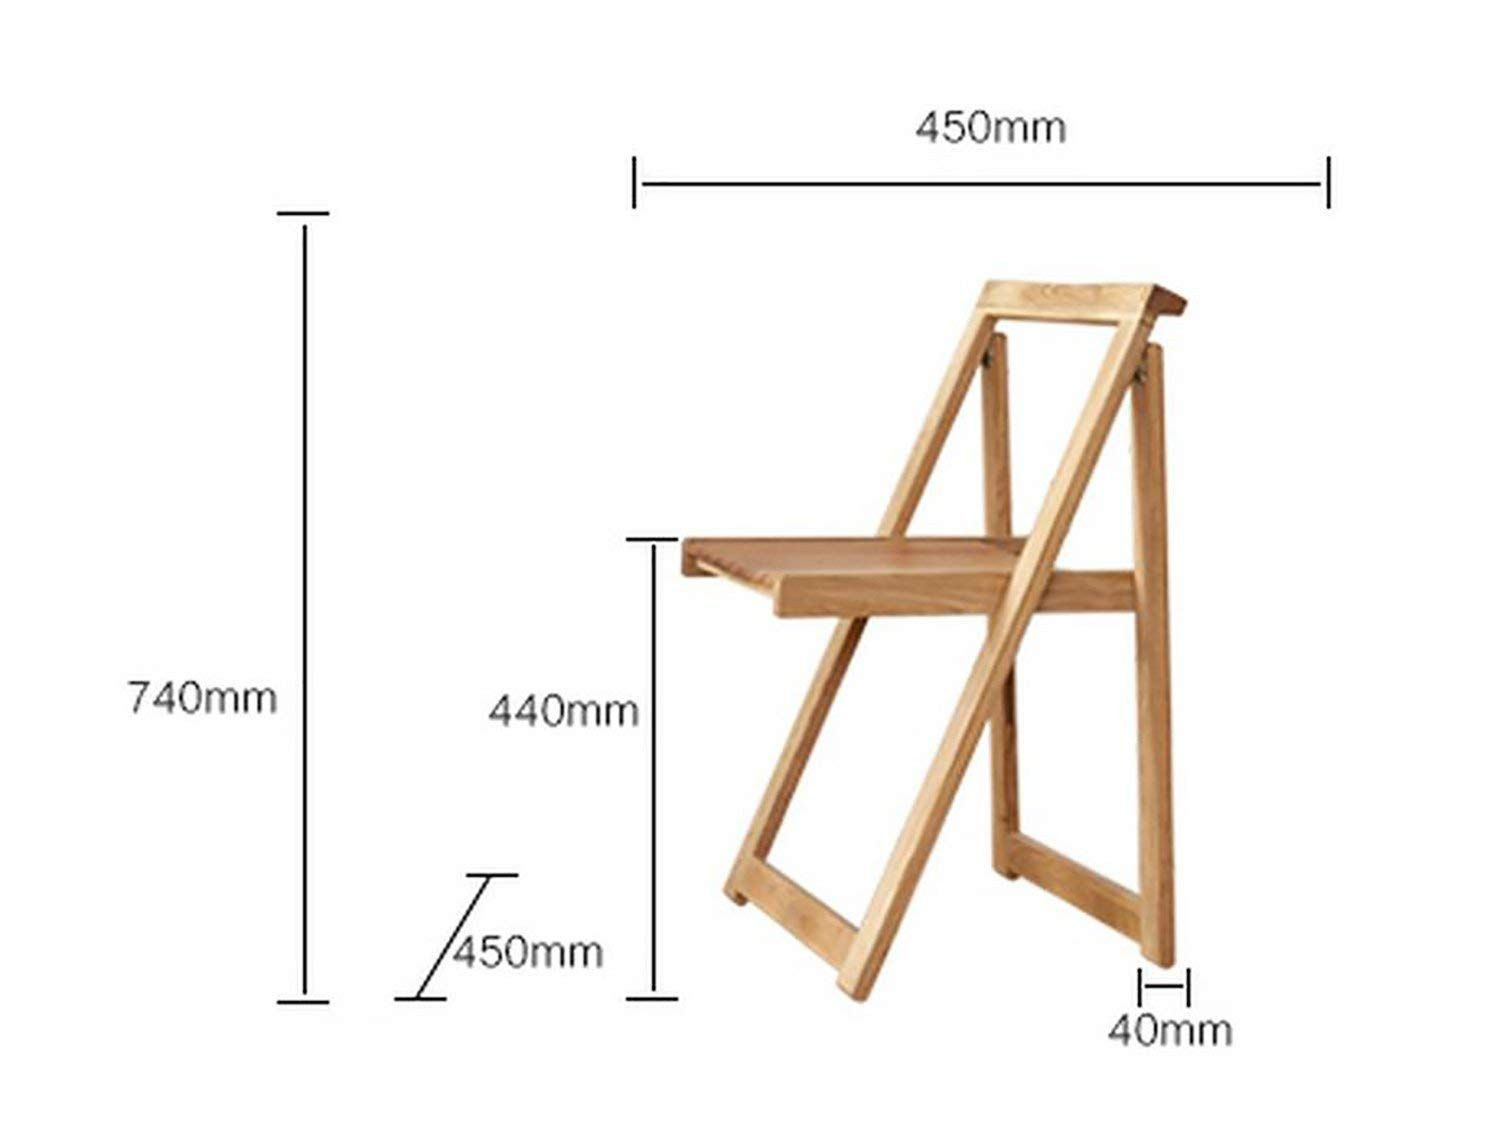 Swell Folding Chair Foldable Chair Wood Folding Chairs Modern Alphanode Cool Chair Designs And Ideas Alphanodeonline